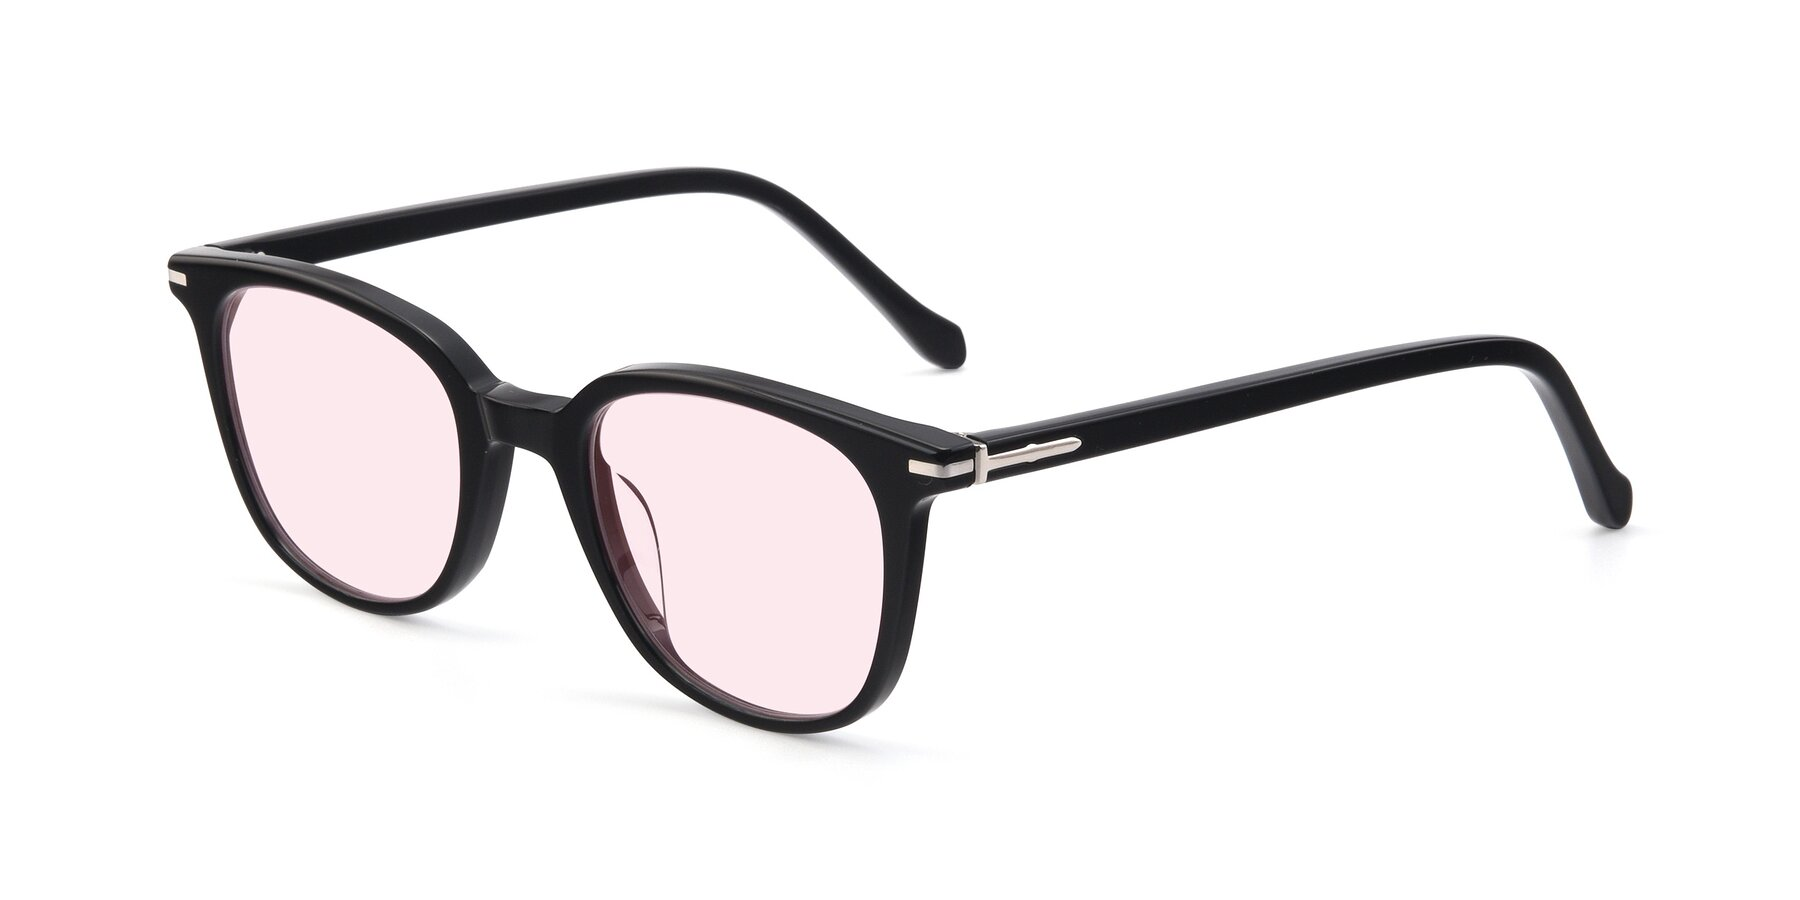 Angle of 17562 in Black with Light Pink Tinted Lenses